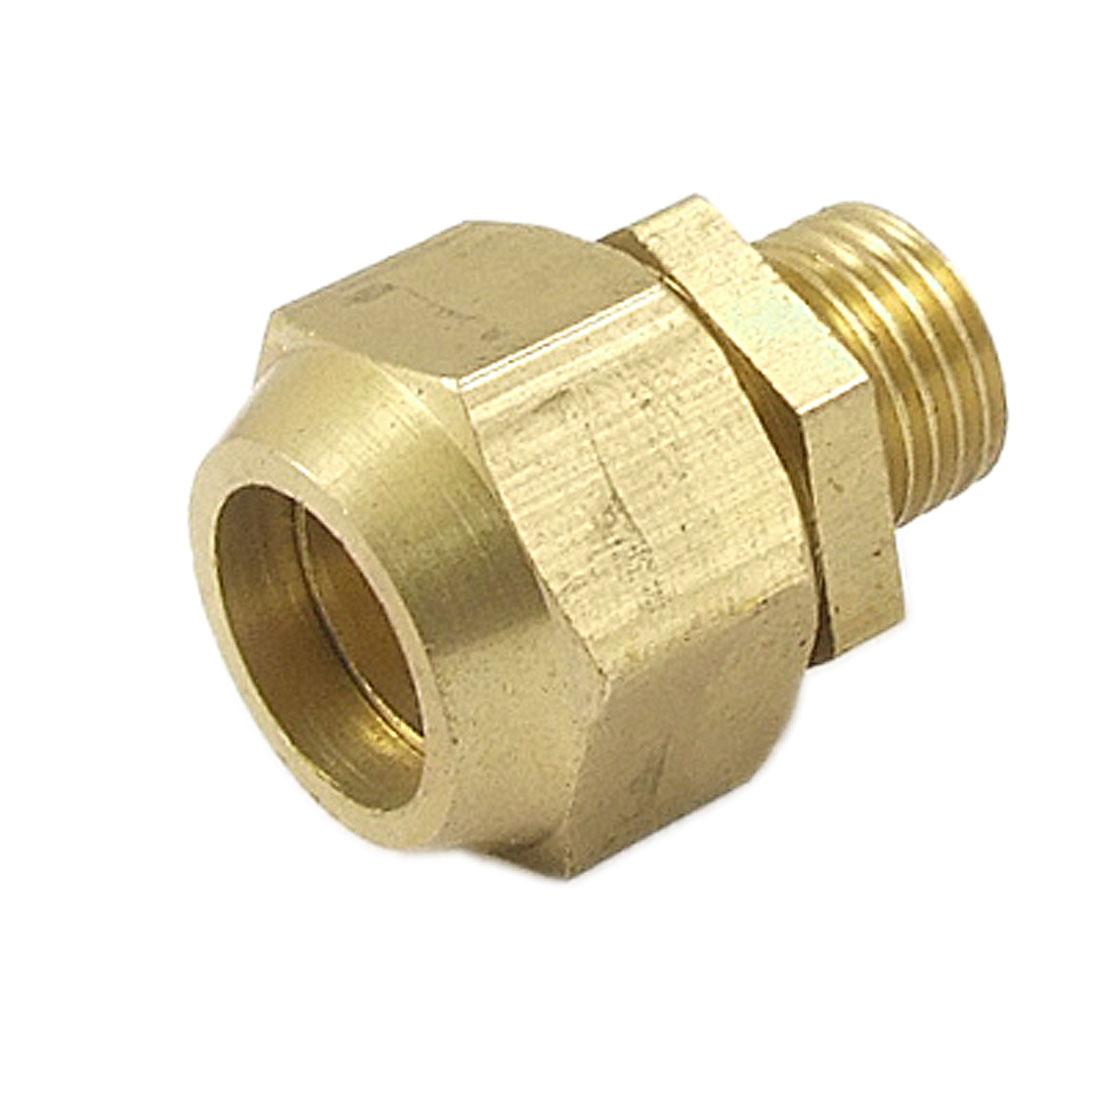 "1/2"" Male Thread 33/64"" Tube Brass Air Fitting Quick Connector Coupler"